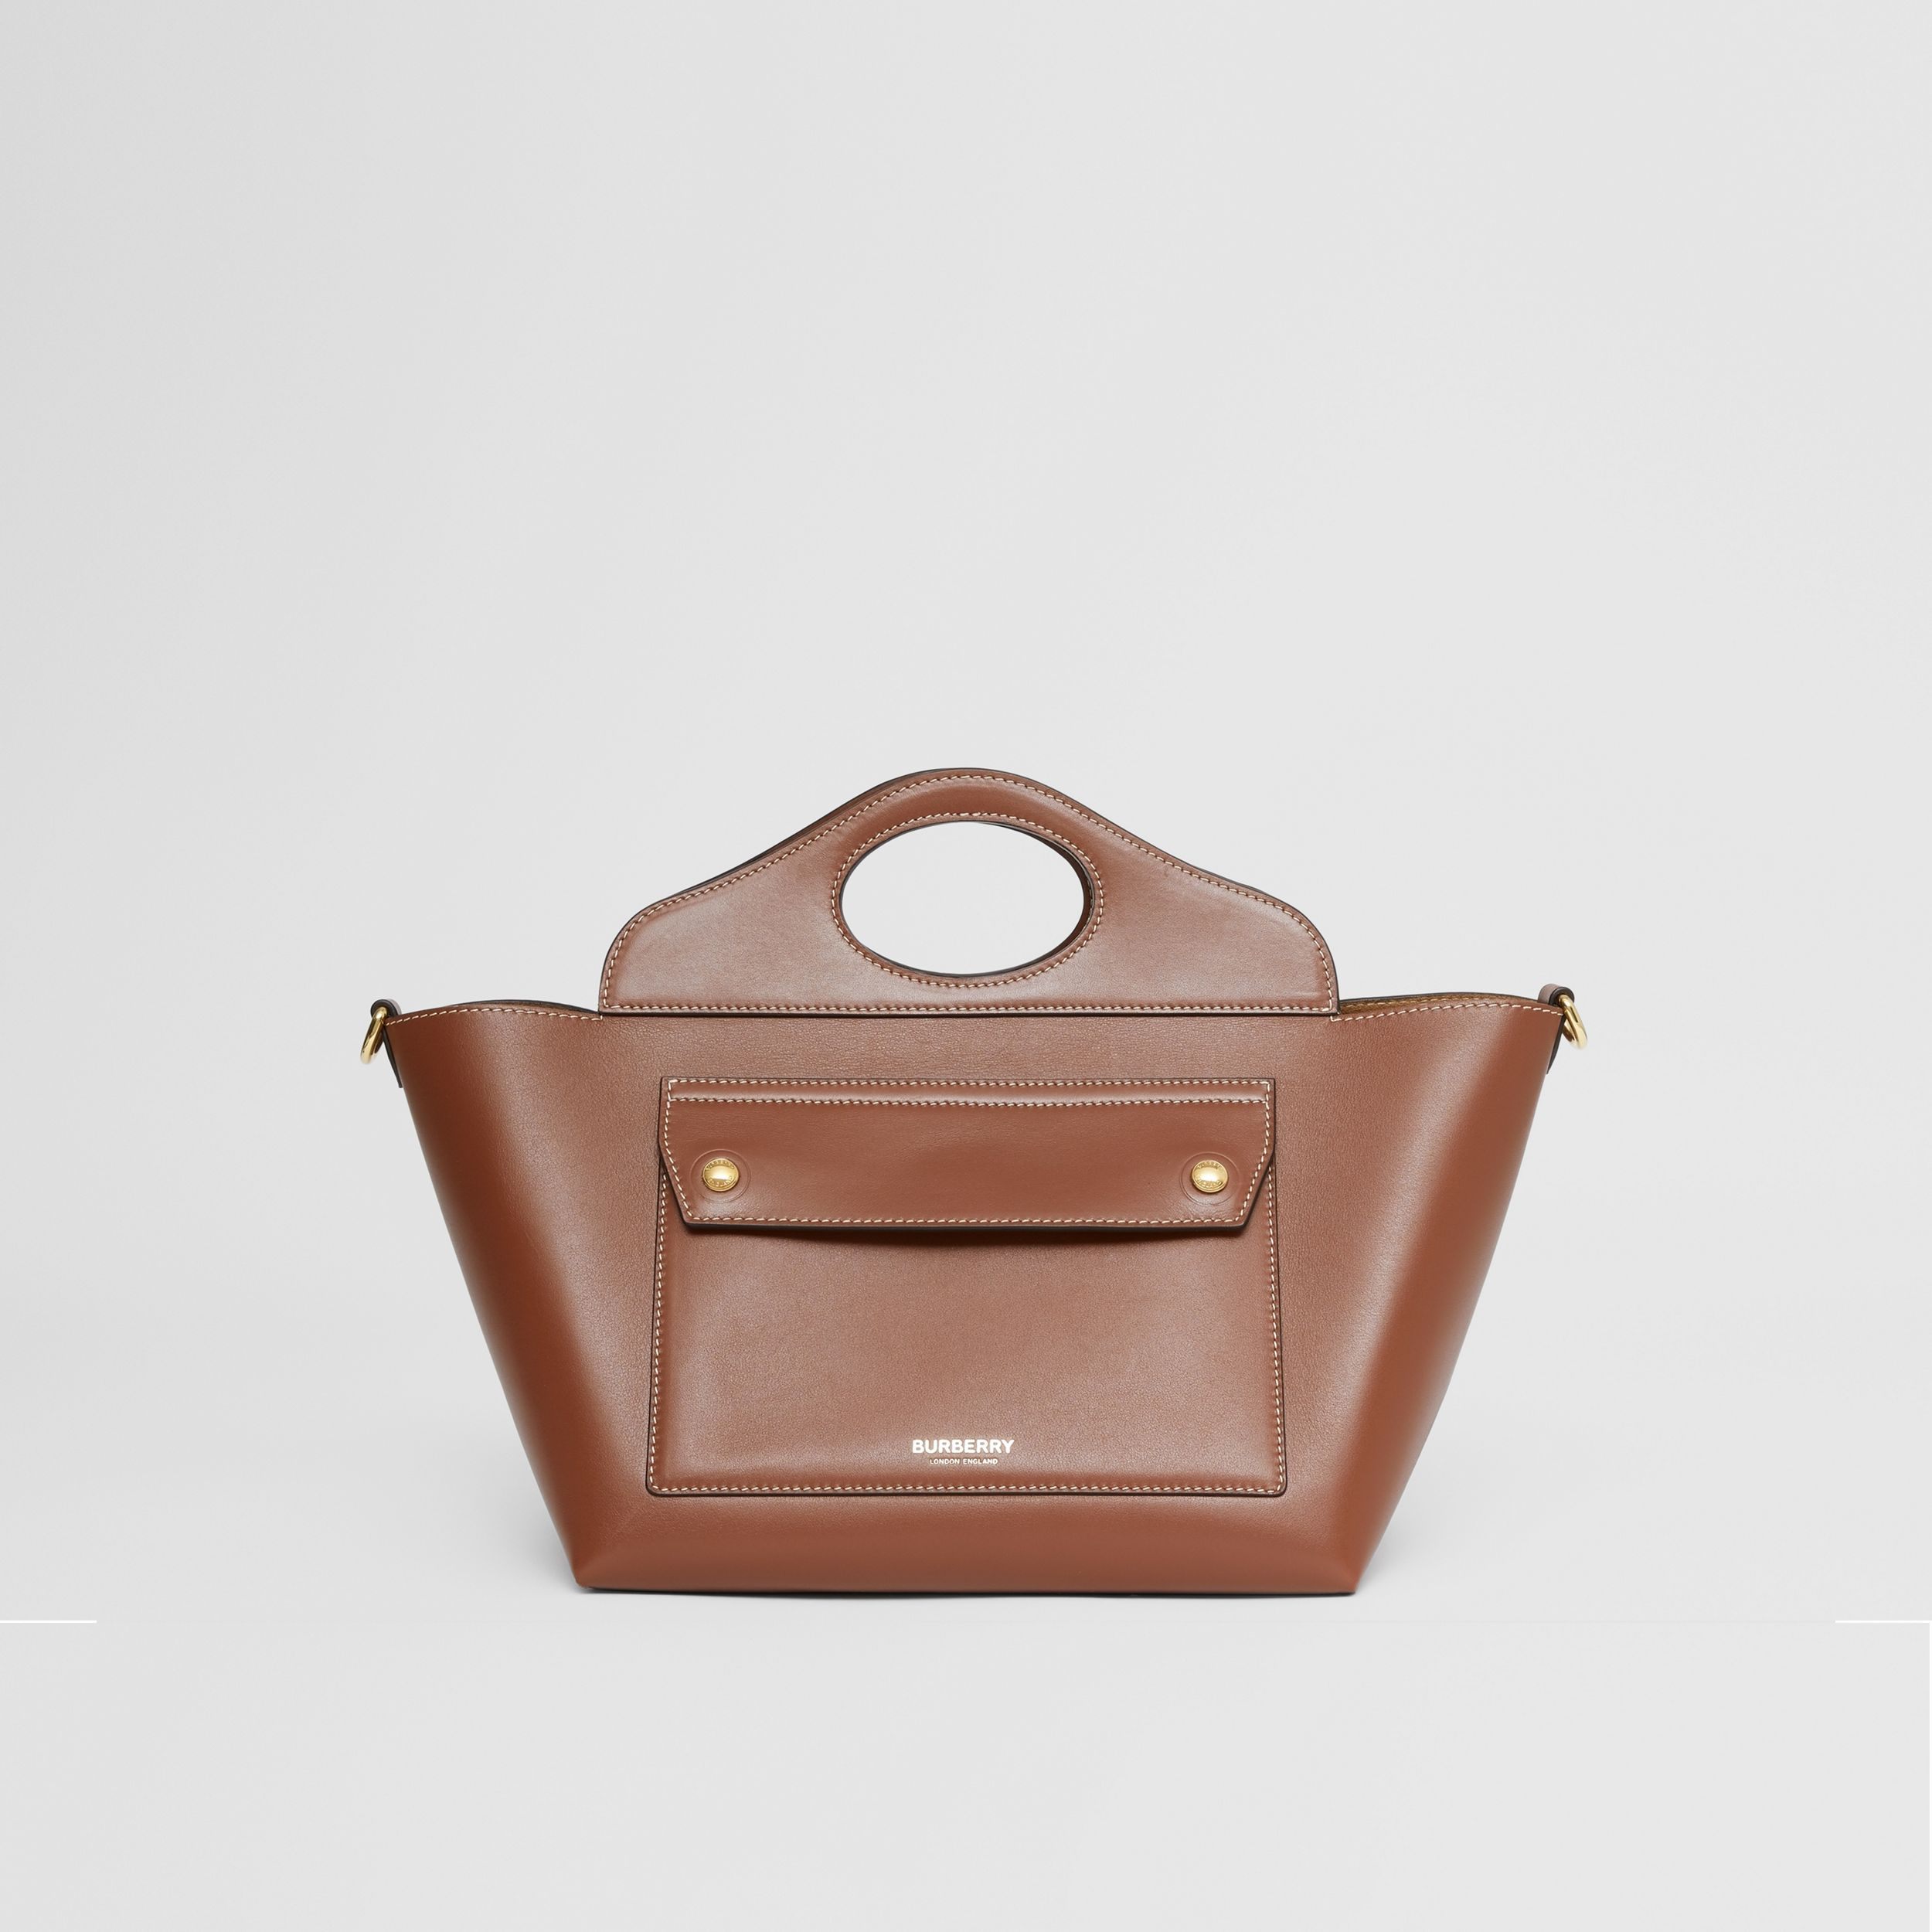 Mini Leather Soft Pocket Tote in Tan - Women | Burberry United Kingdom - 1